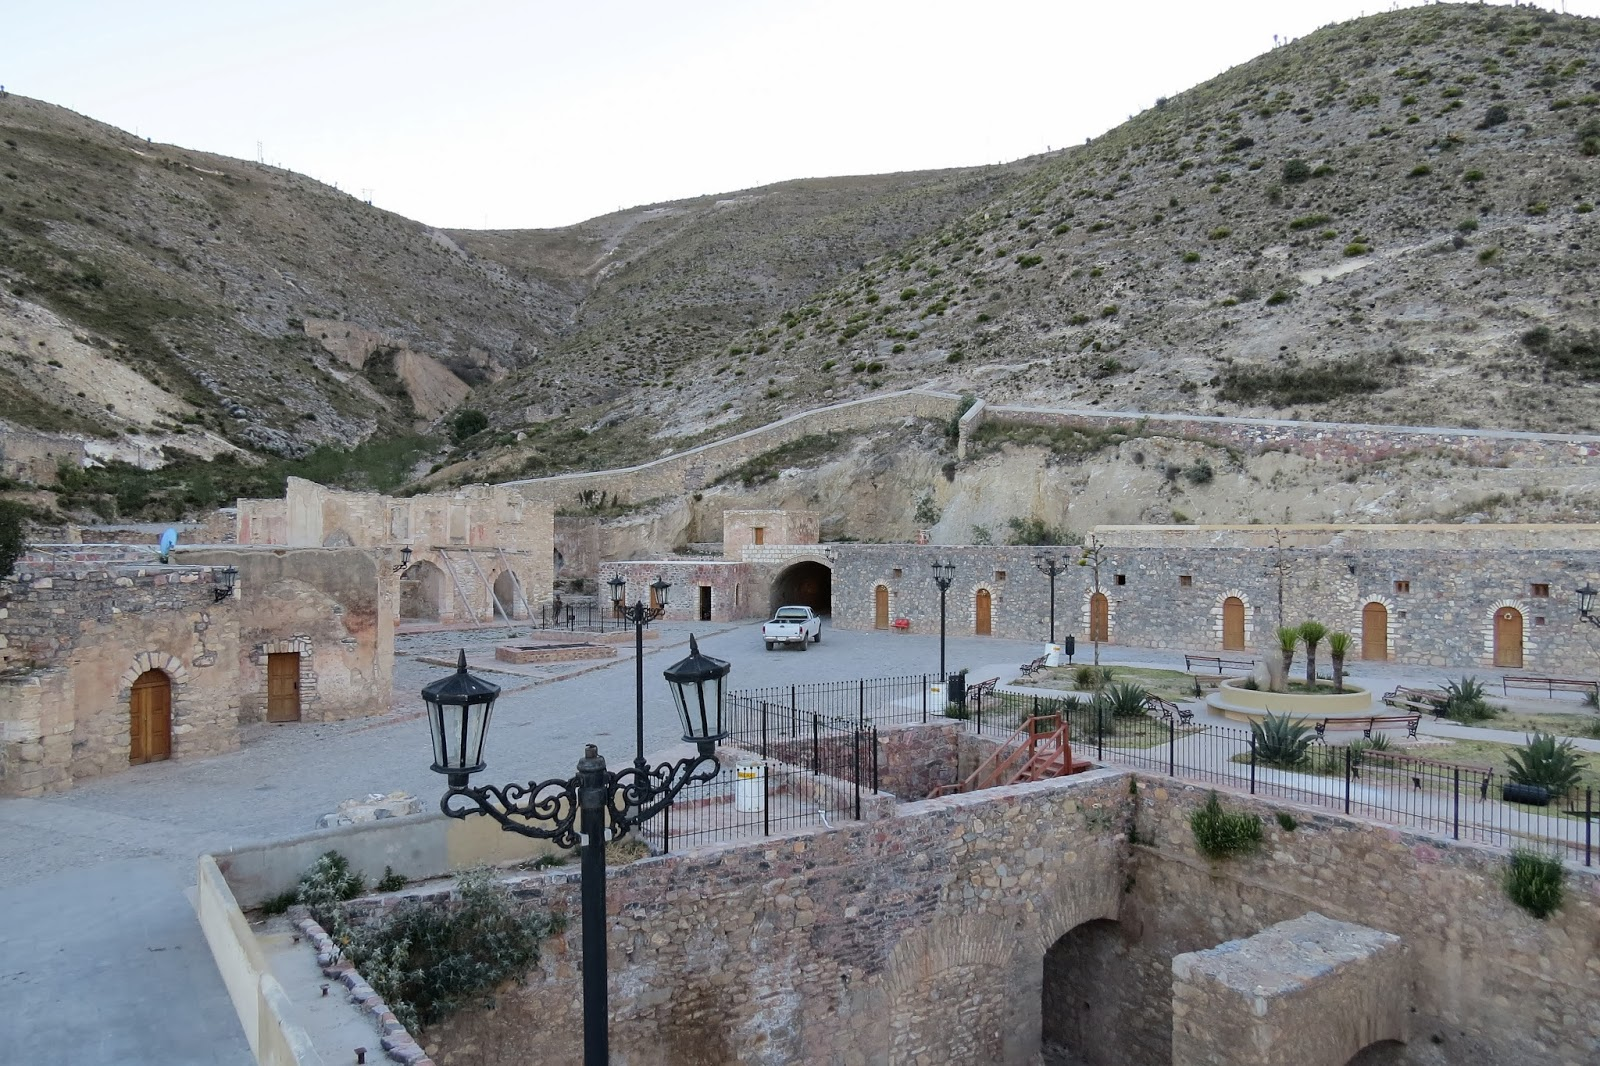 The Real de Catorce tunnel entrance, photo taken standing on the roofof our truck